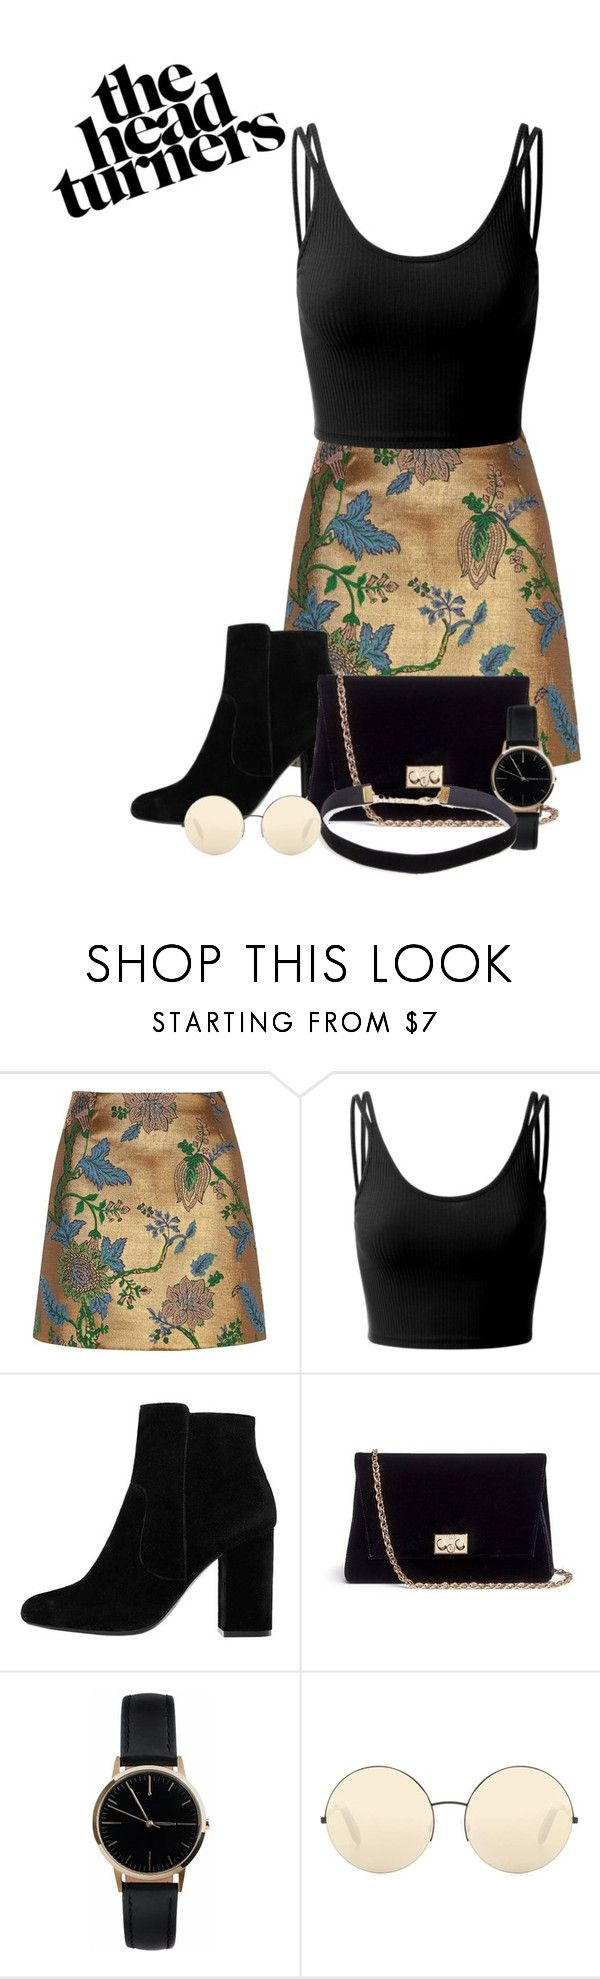 """""""Head Turners"""" by wolf-teen ❤ liked on Polyvore featuring River Island, Doublju, MANGO, Rodo, Freedom To Exist and Victoria Beckham"""